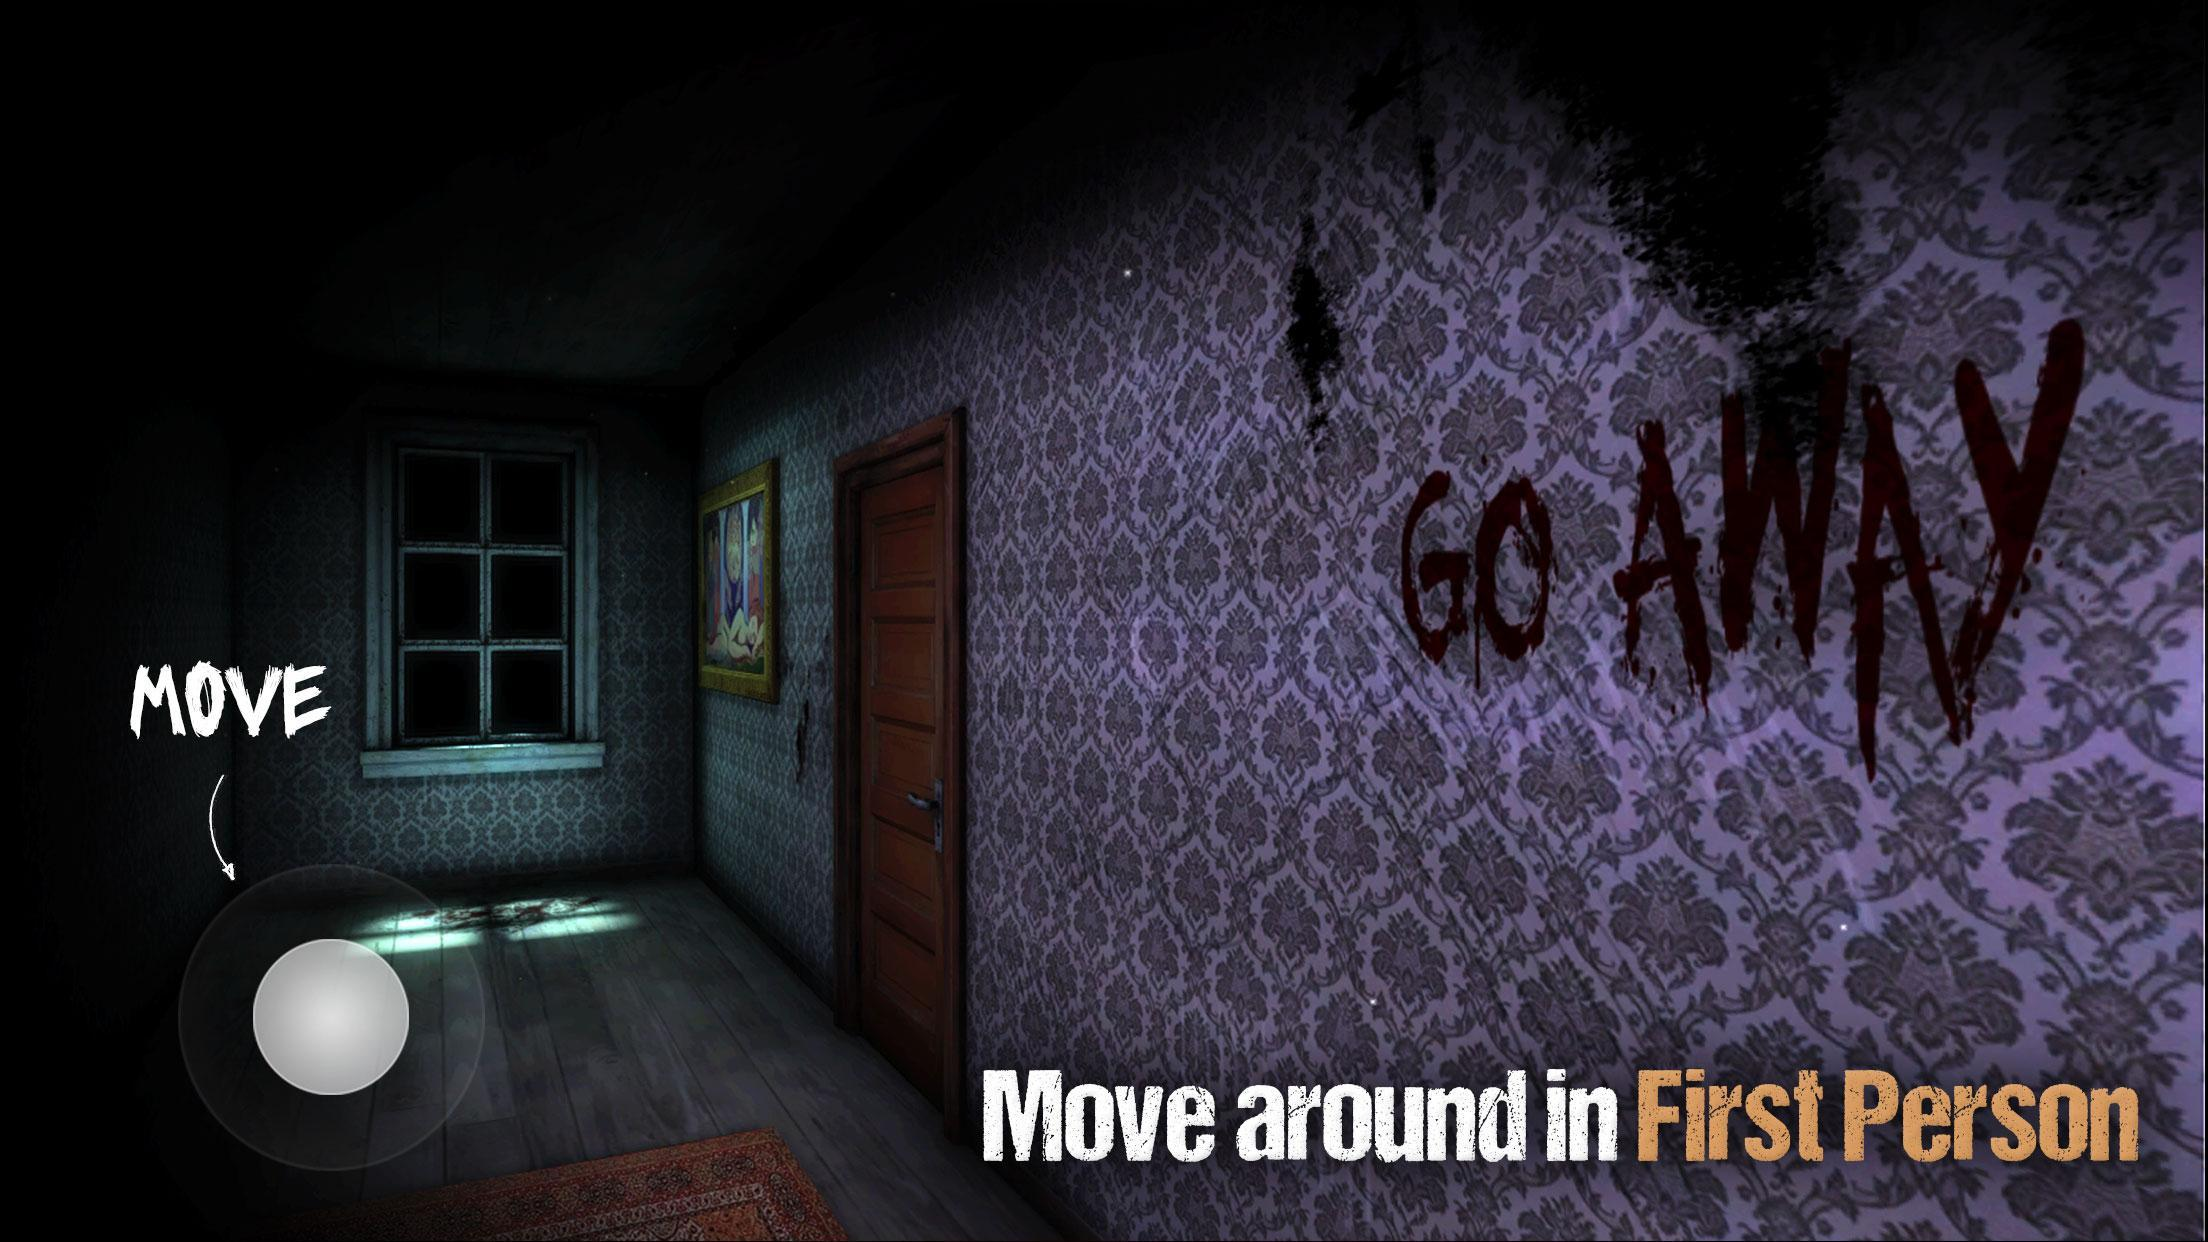 Sinister Edge Scary Horror Games 2.4.1 Screenshot 10